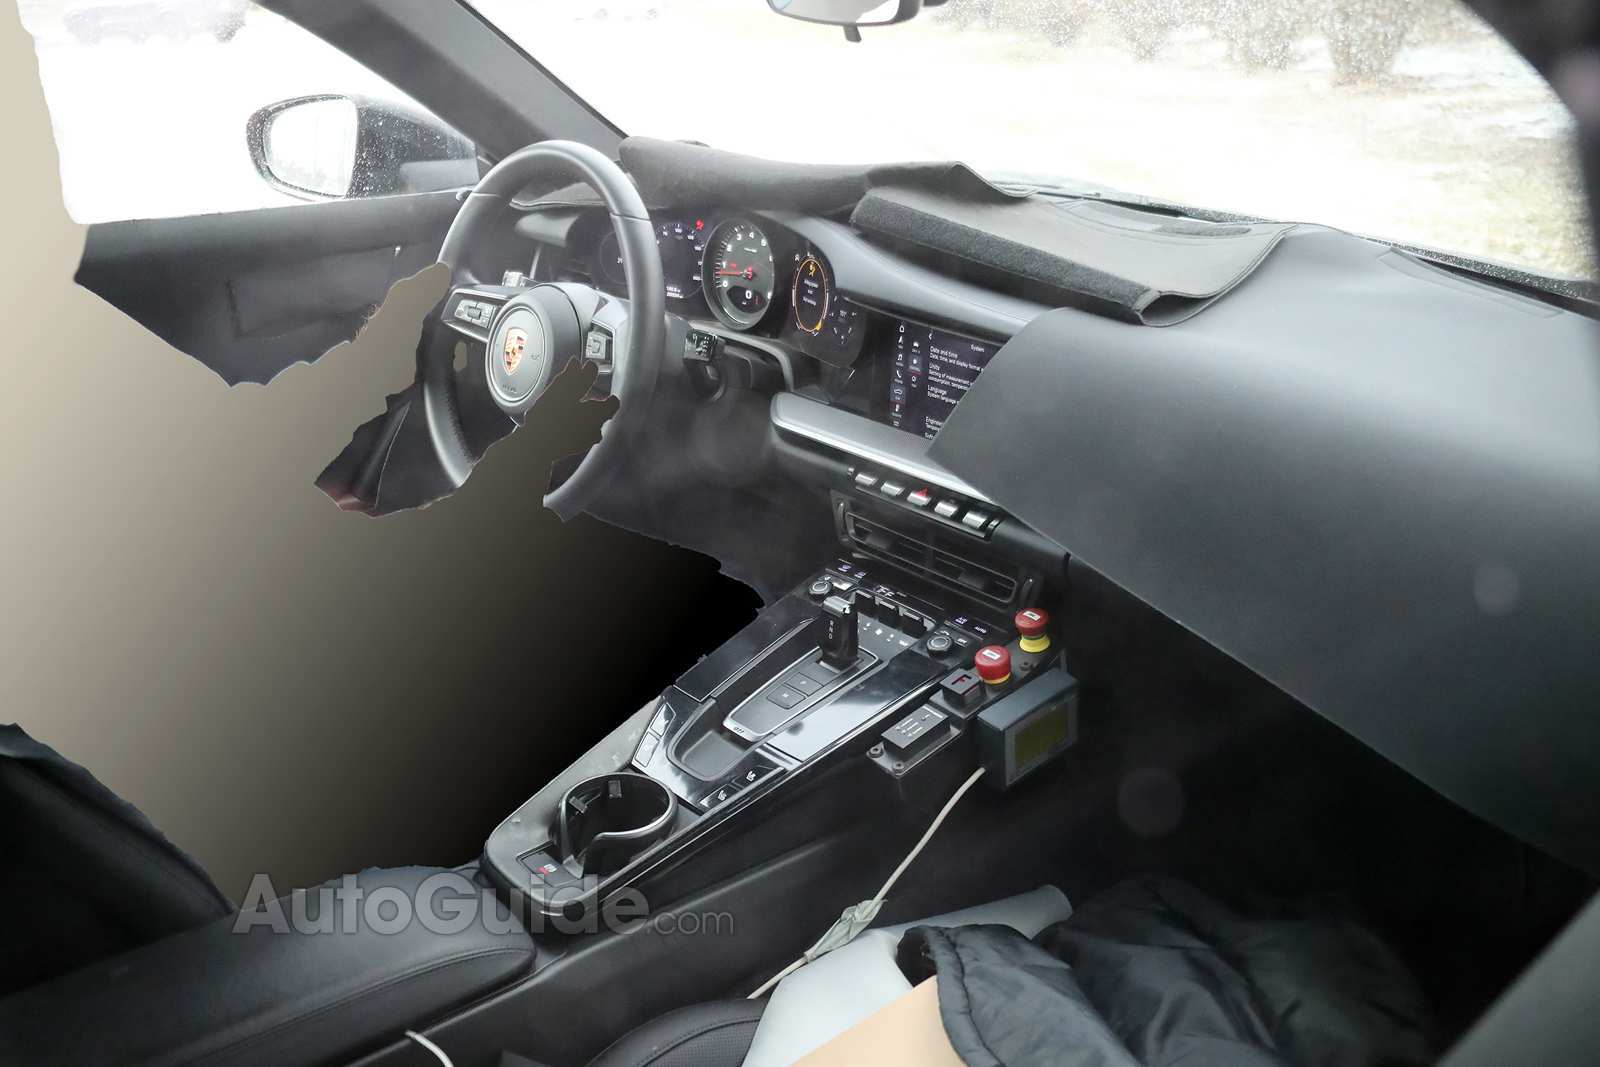 37 All New 2019 Porsche 911 Interior Release Date with 2019 Porsche 911 Interior